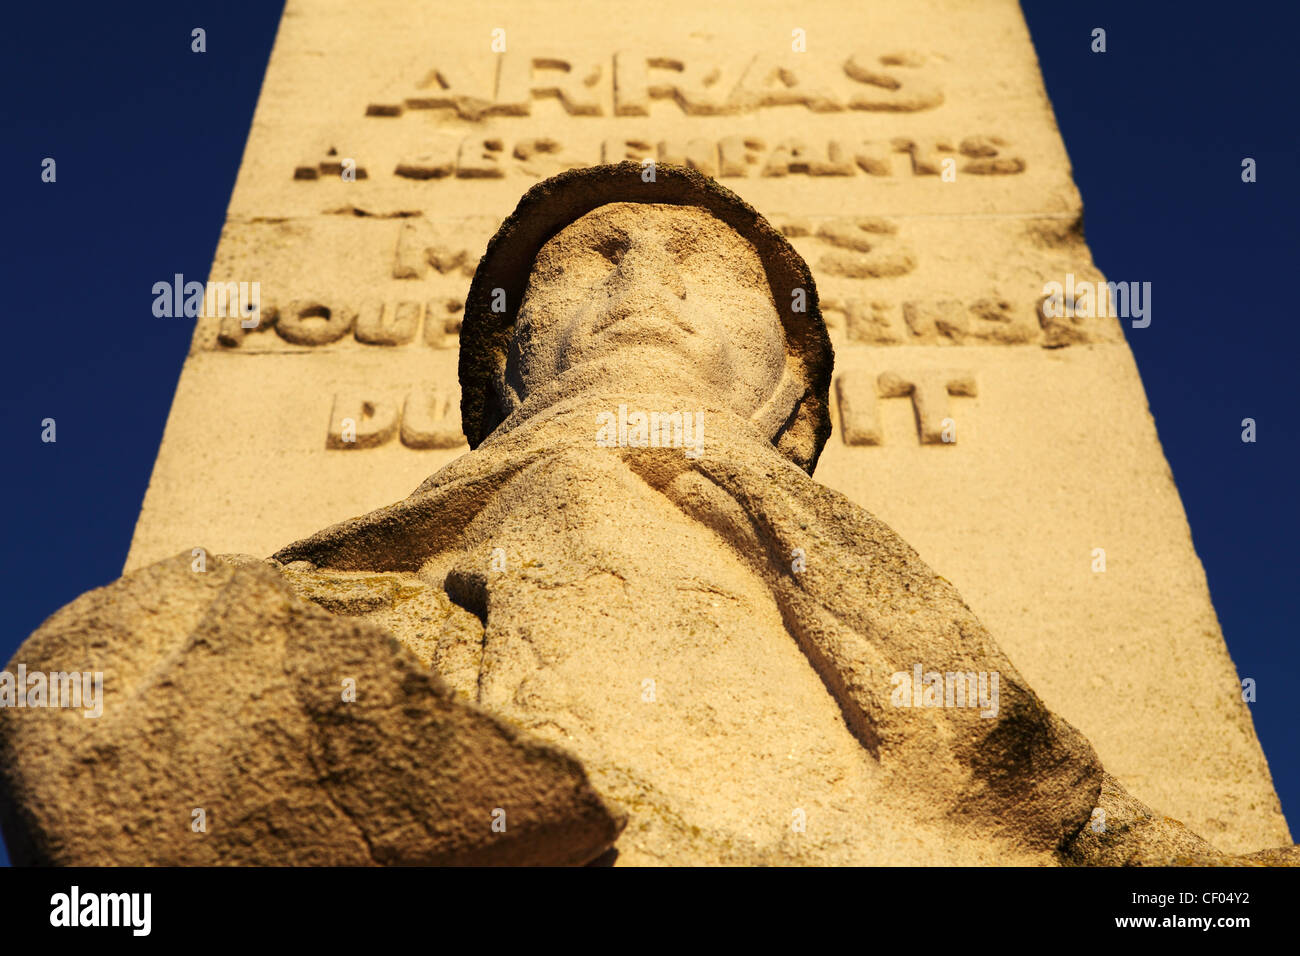 French War Memorial in Arras, France. - Stock Image